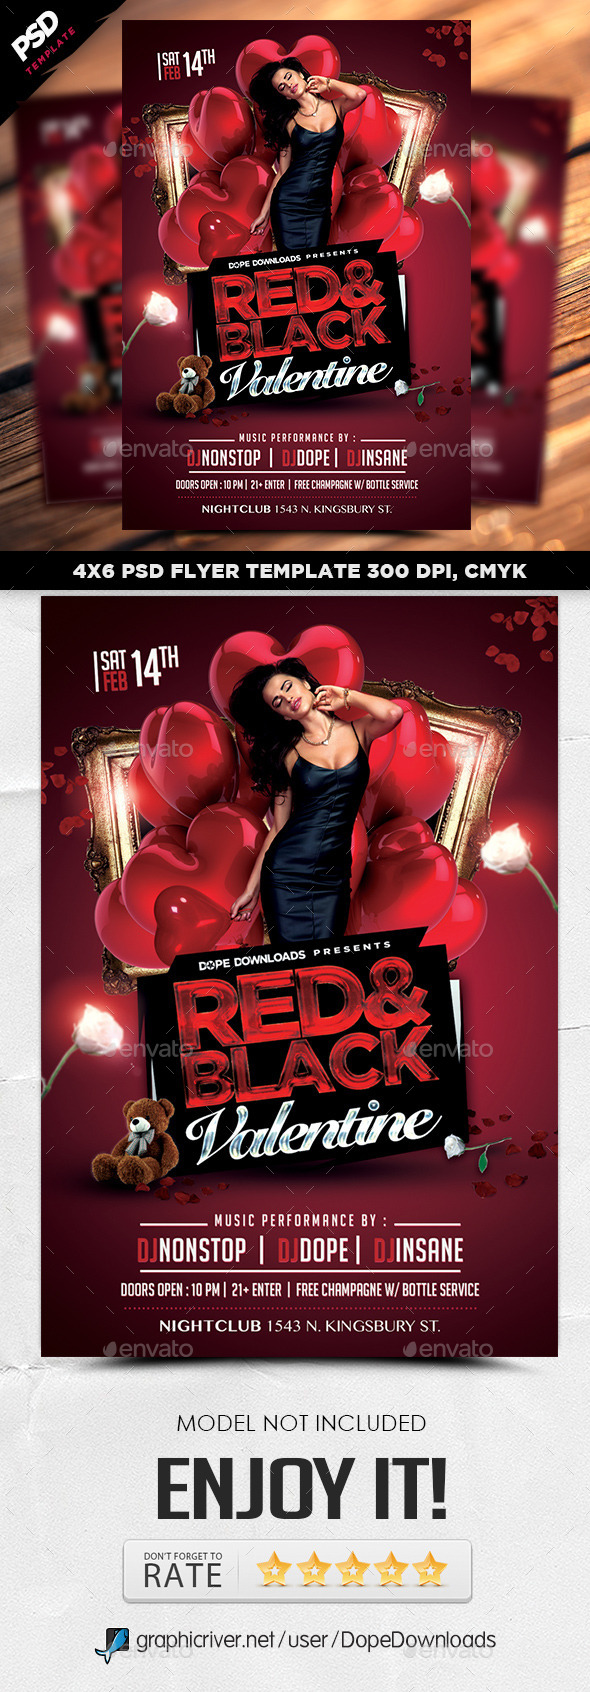 Red & Black Valentine Flyer Template - Holidays Events